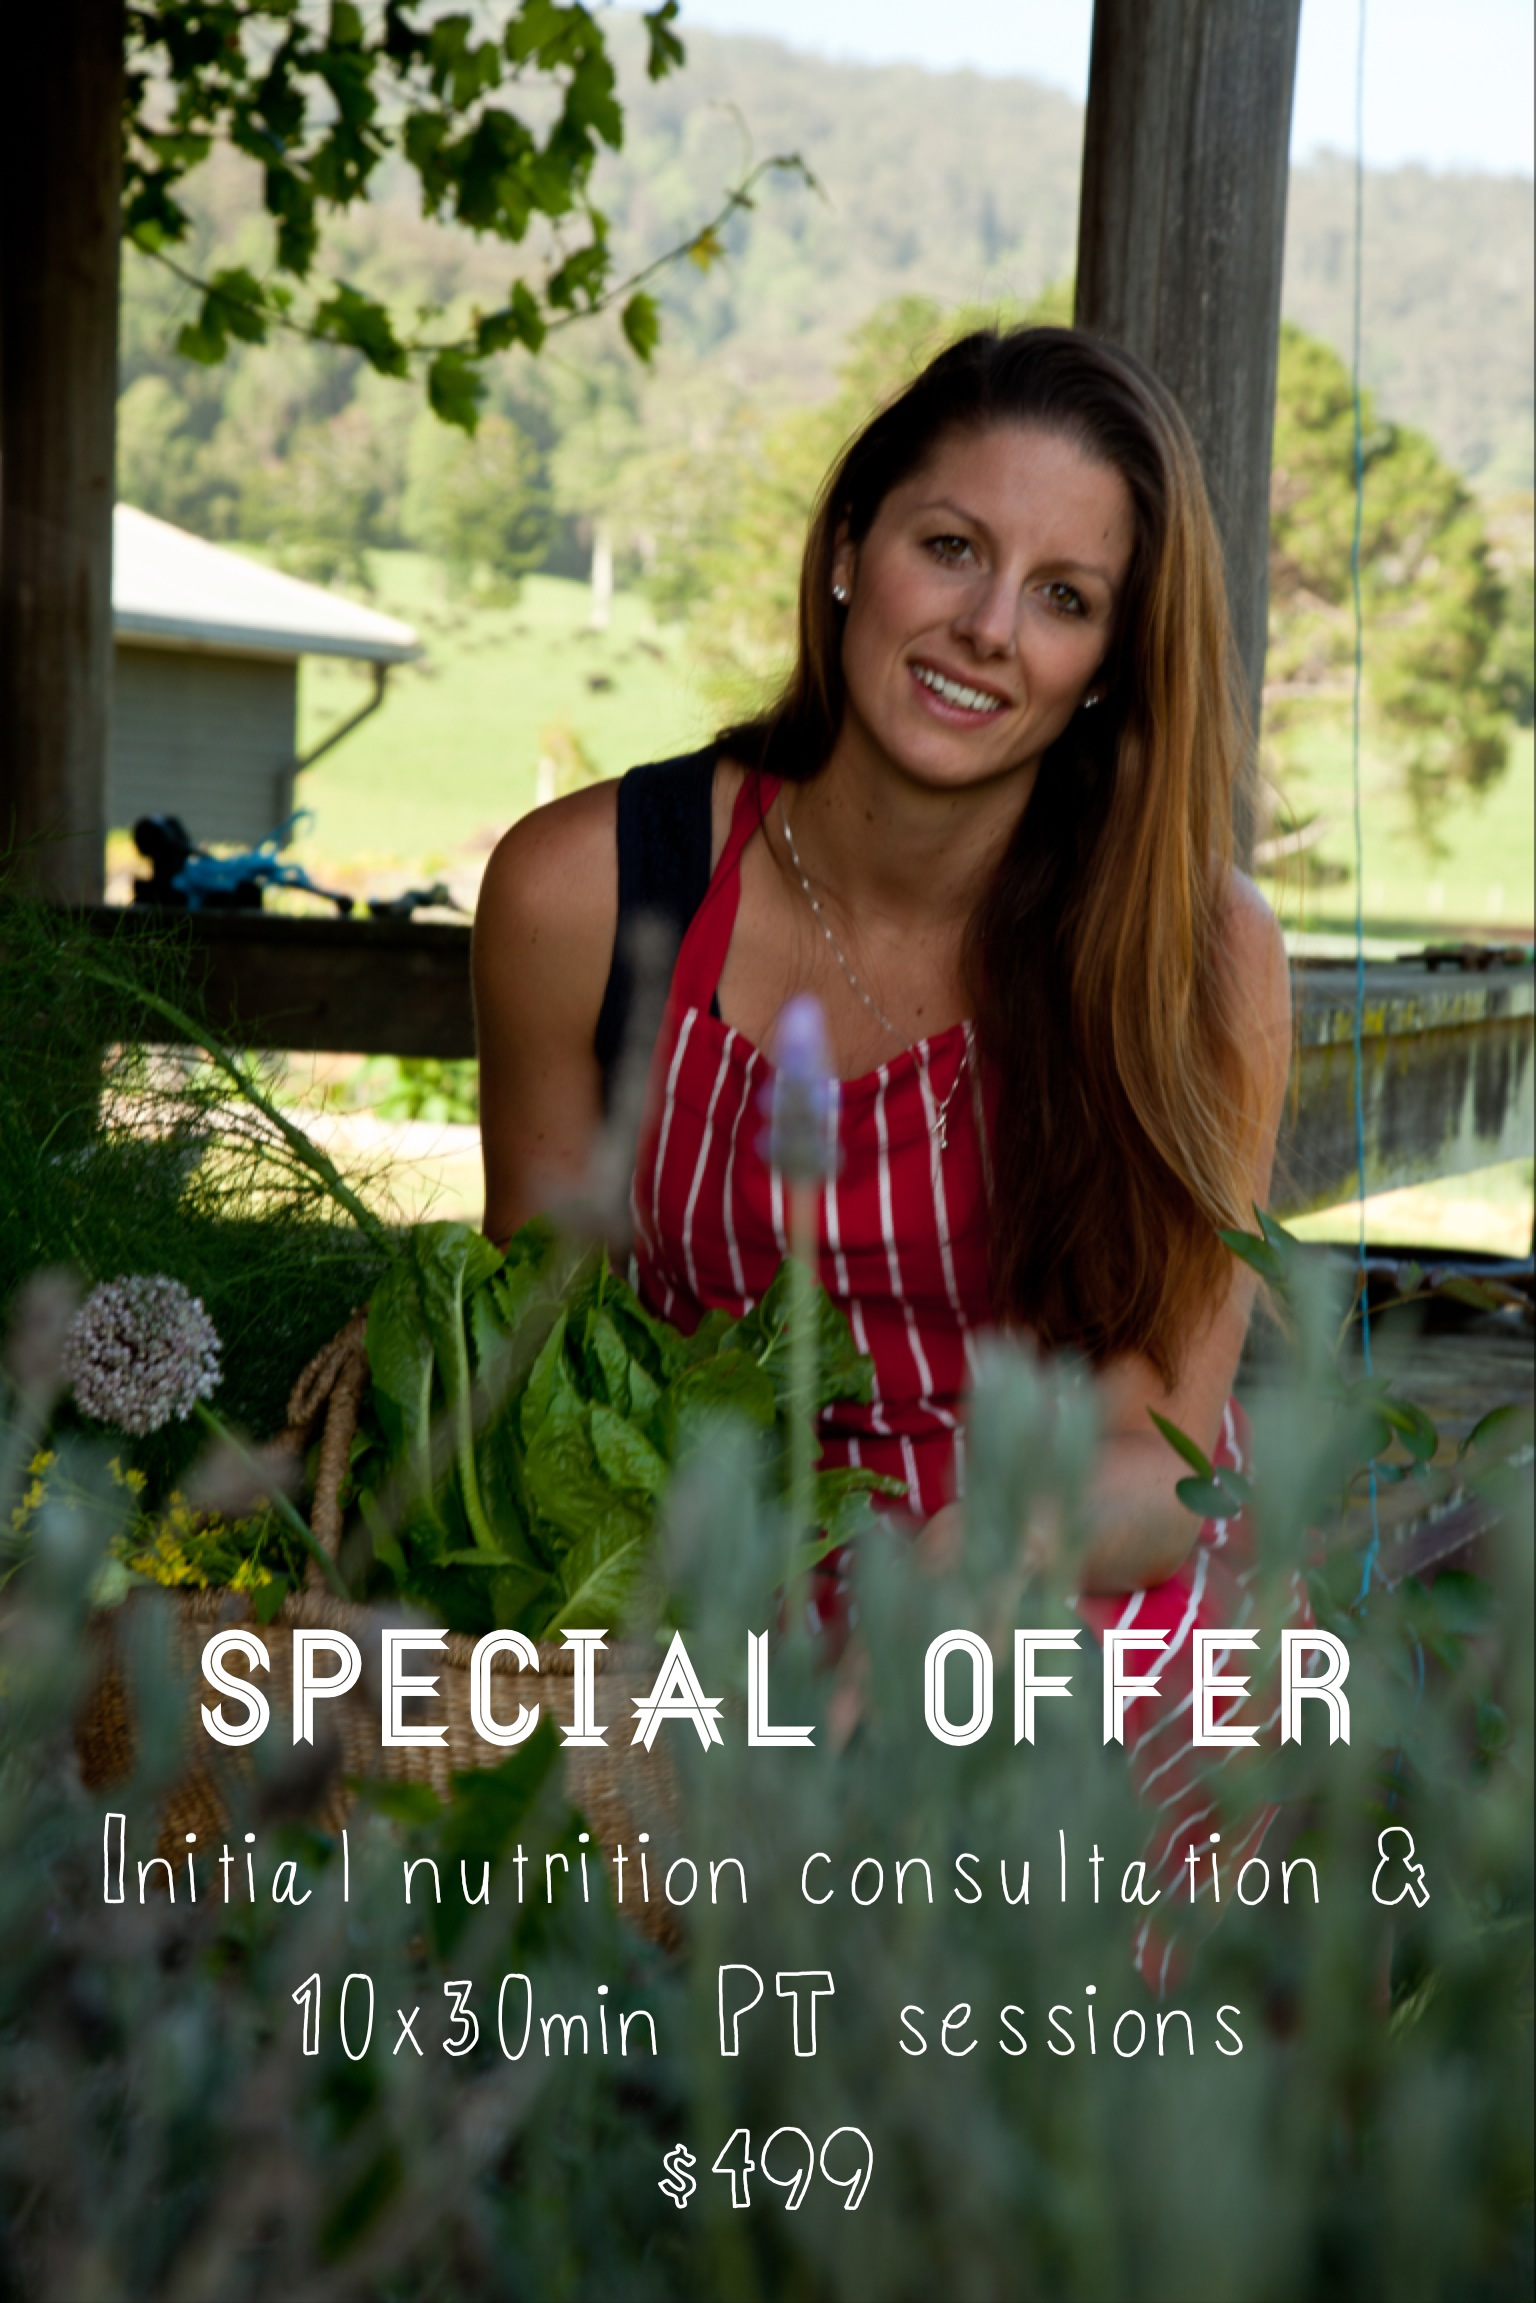 KICKSTART your health with body fusion - Why not?